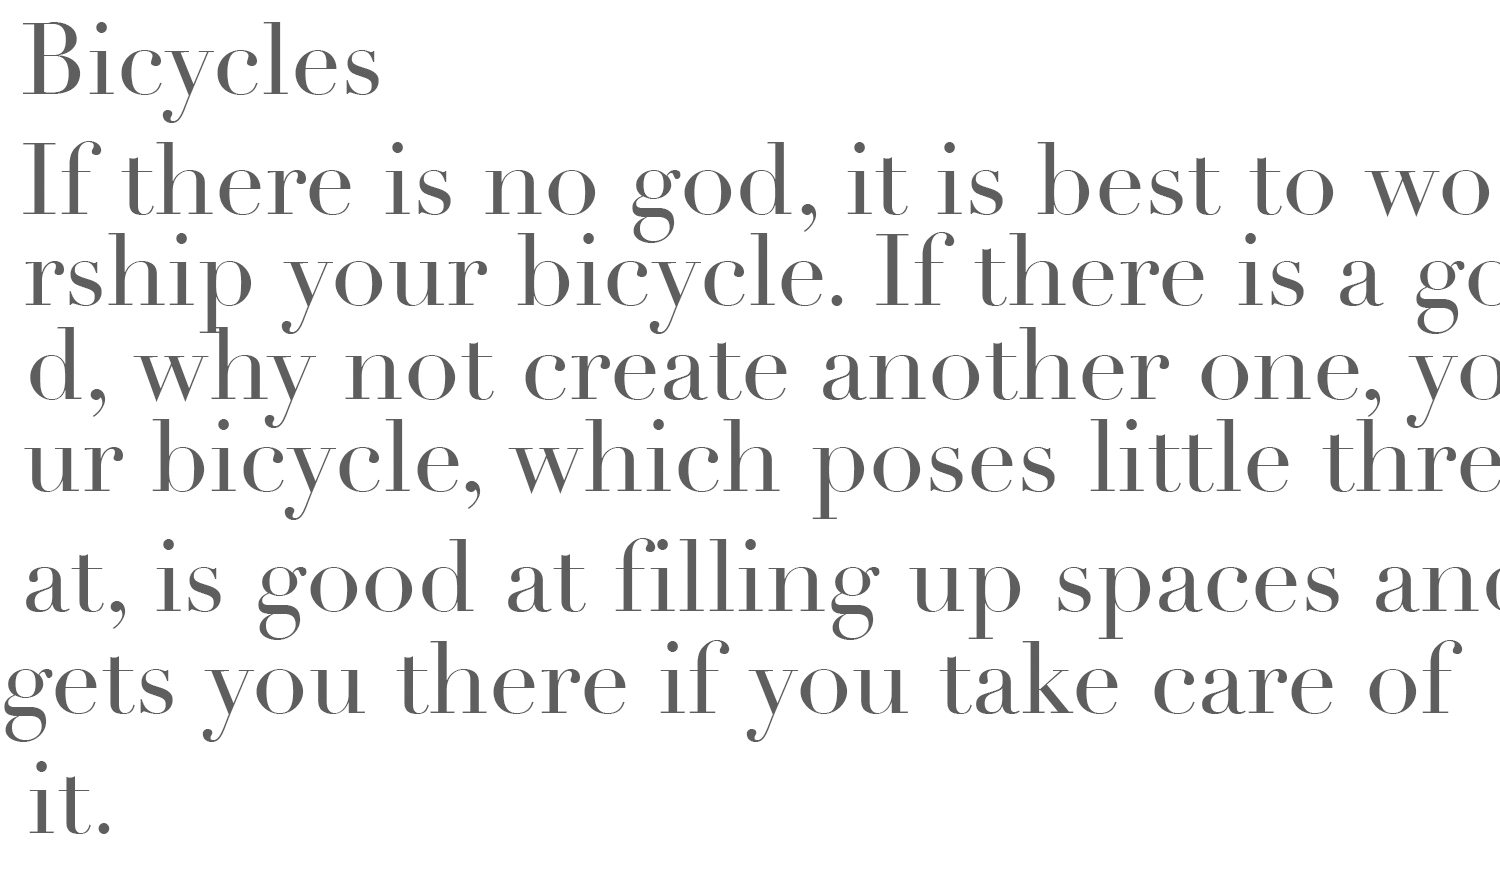 bicycles.jpg